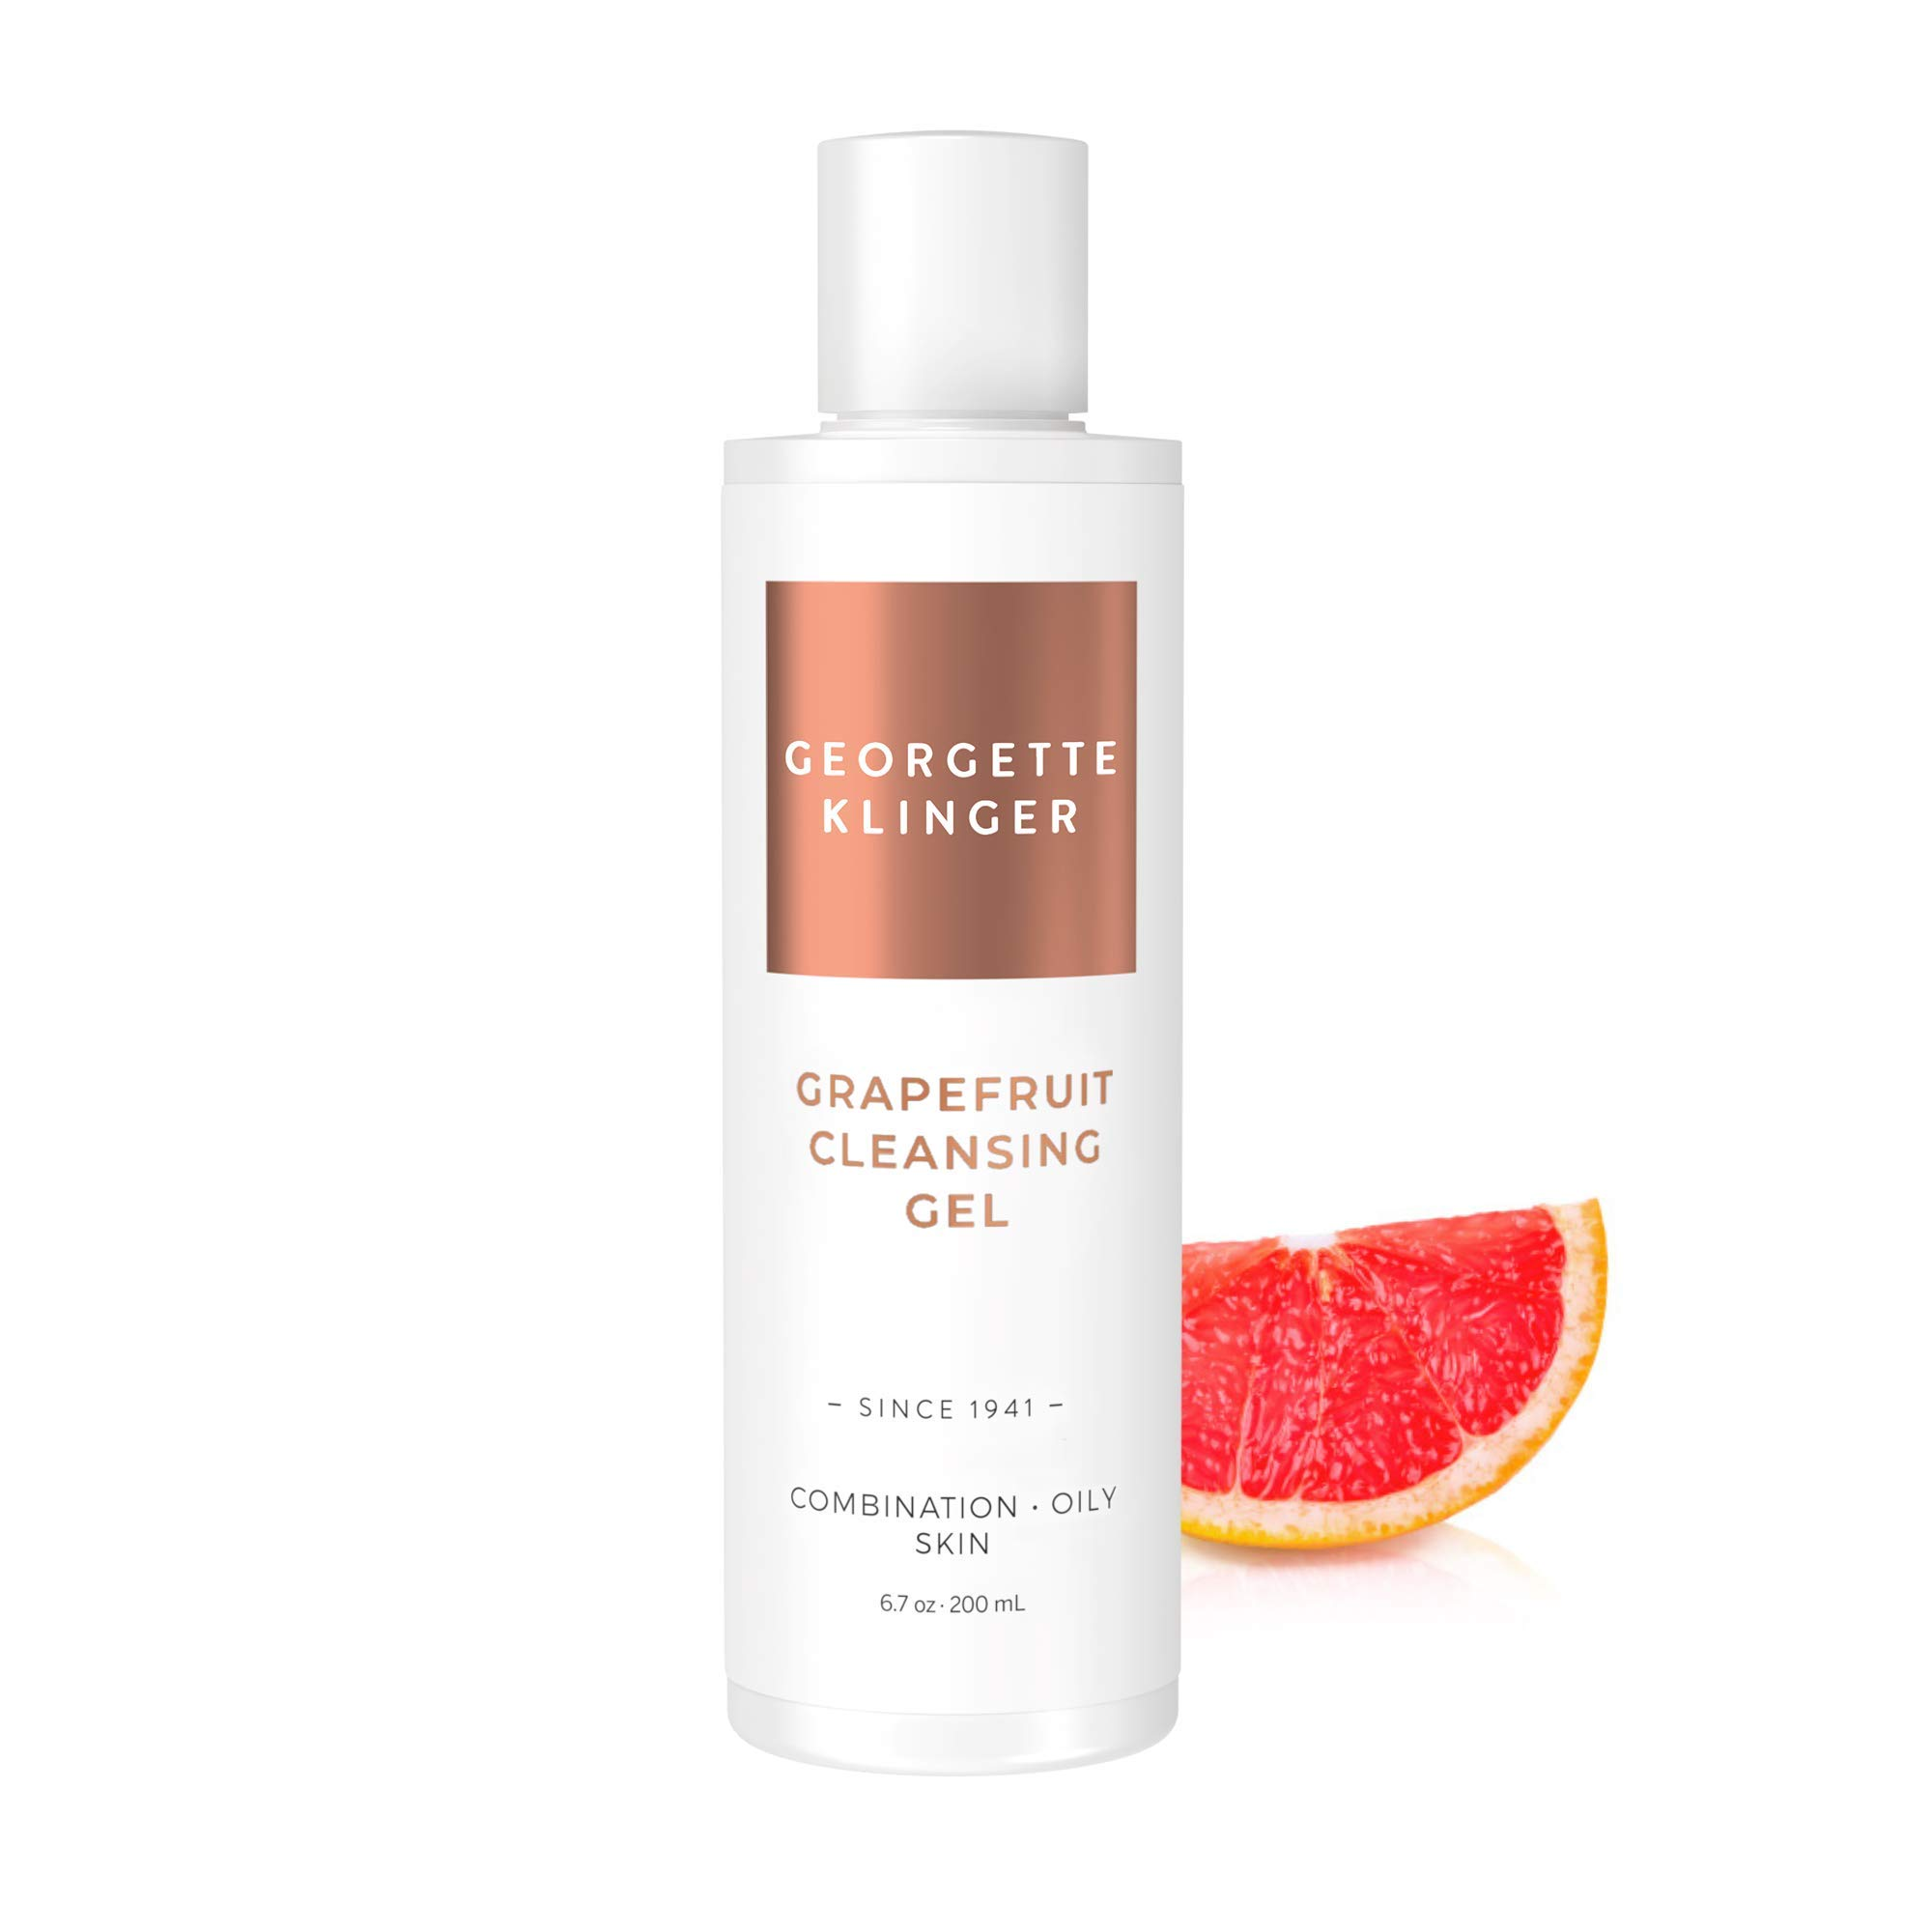 Grapefruit Facial Cleansing Gel by Georgette Klinger – Foaming Cleanser Helps Unclog Pores, Rids Excess Oil & Dirt Keeping Skin Clean, Clear and Radiant